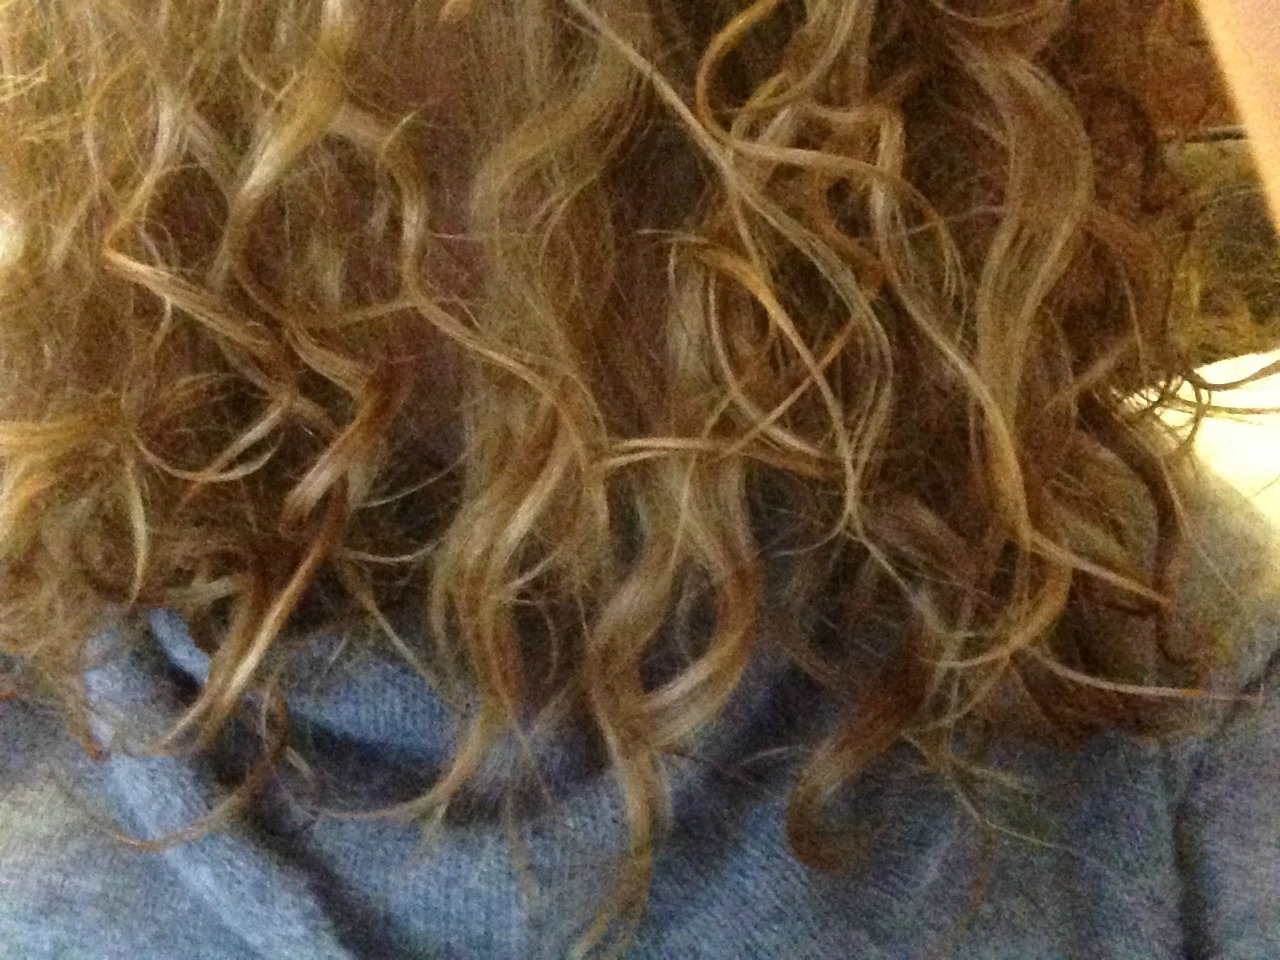 The ends of my very curly blonde hair